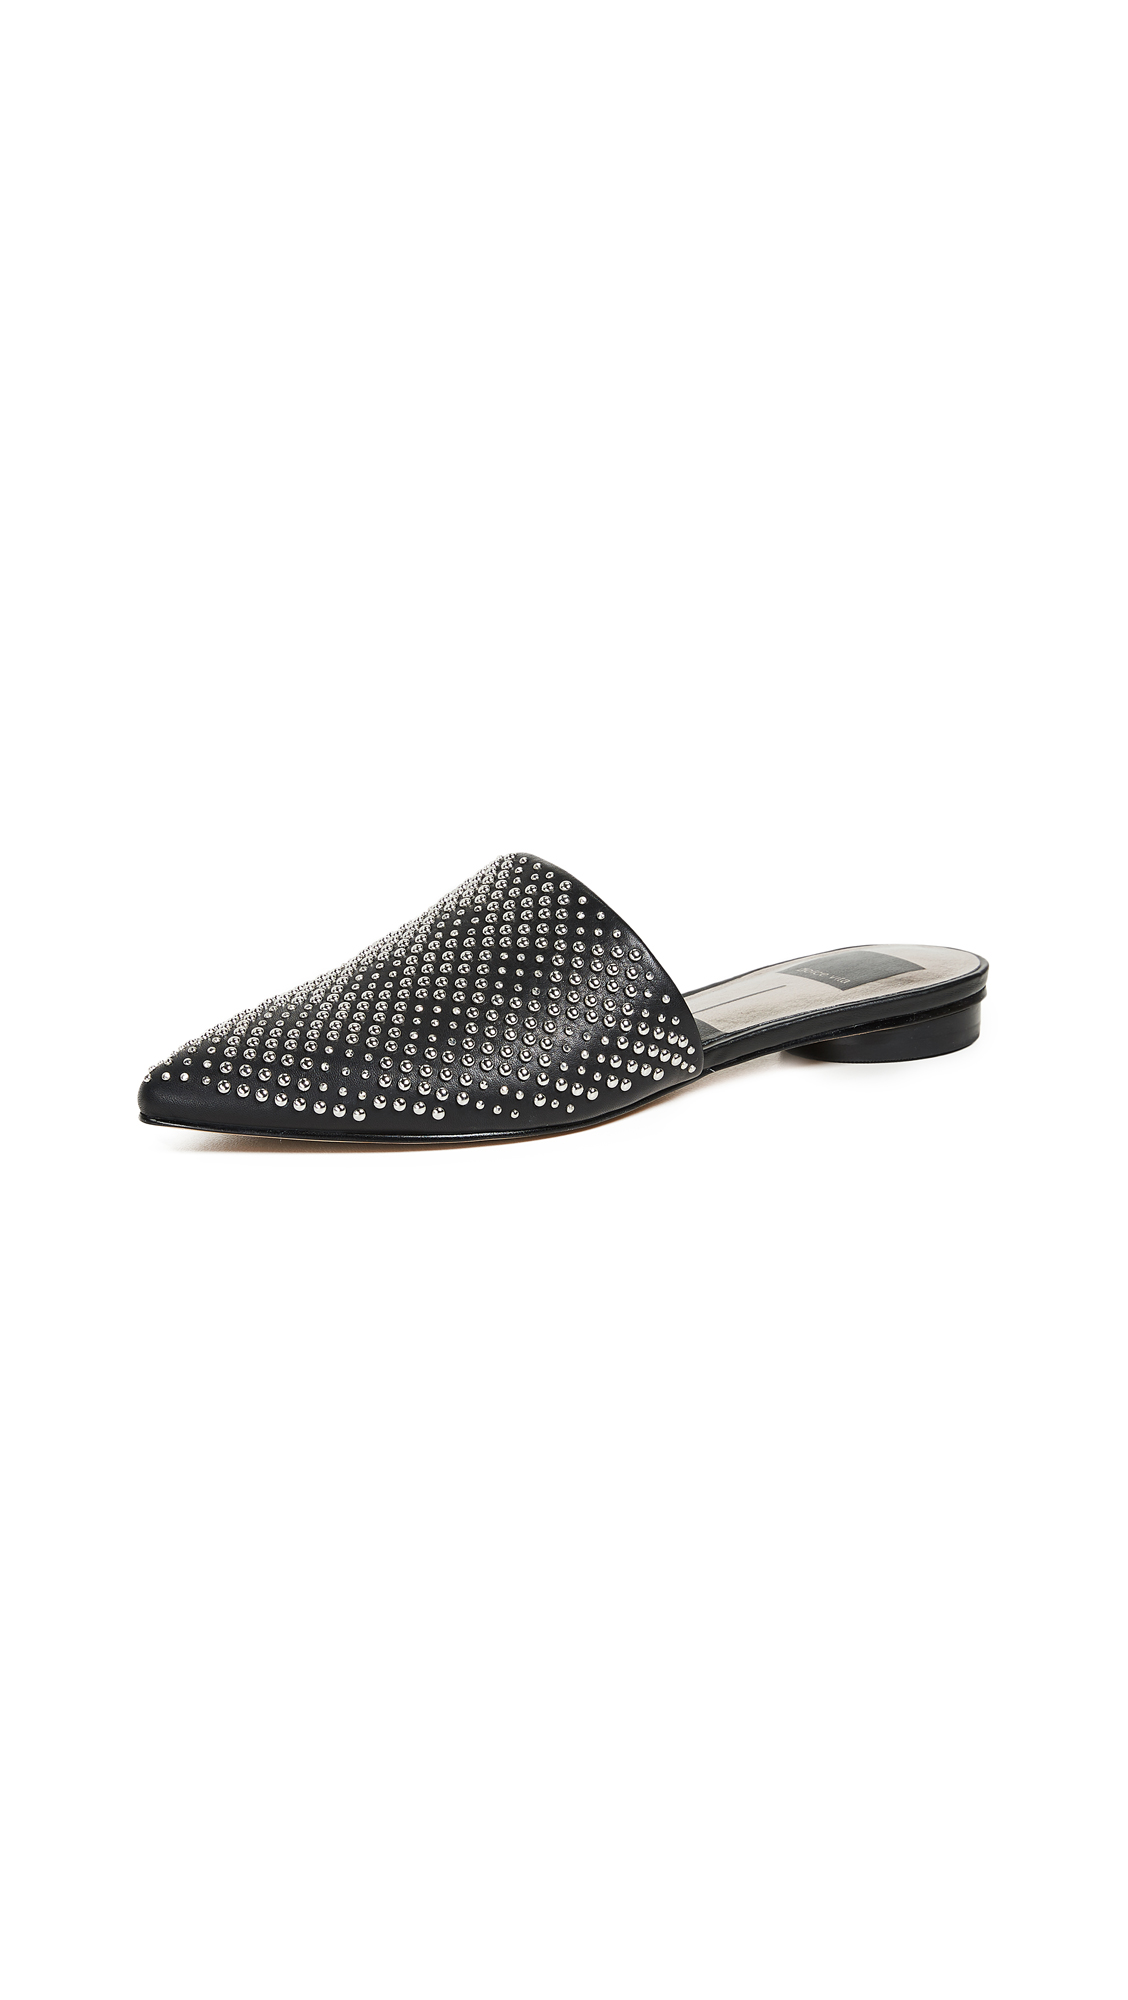 Dolce Vita Elvah Point Toe Mules - Black